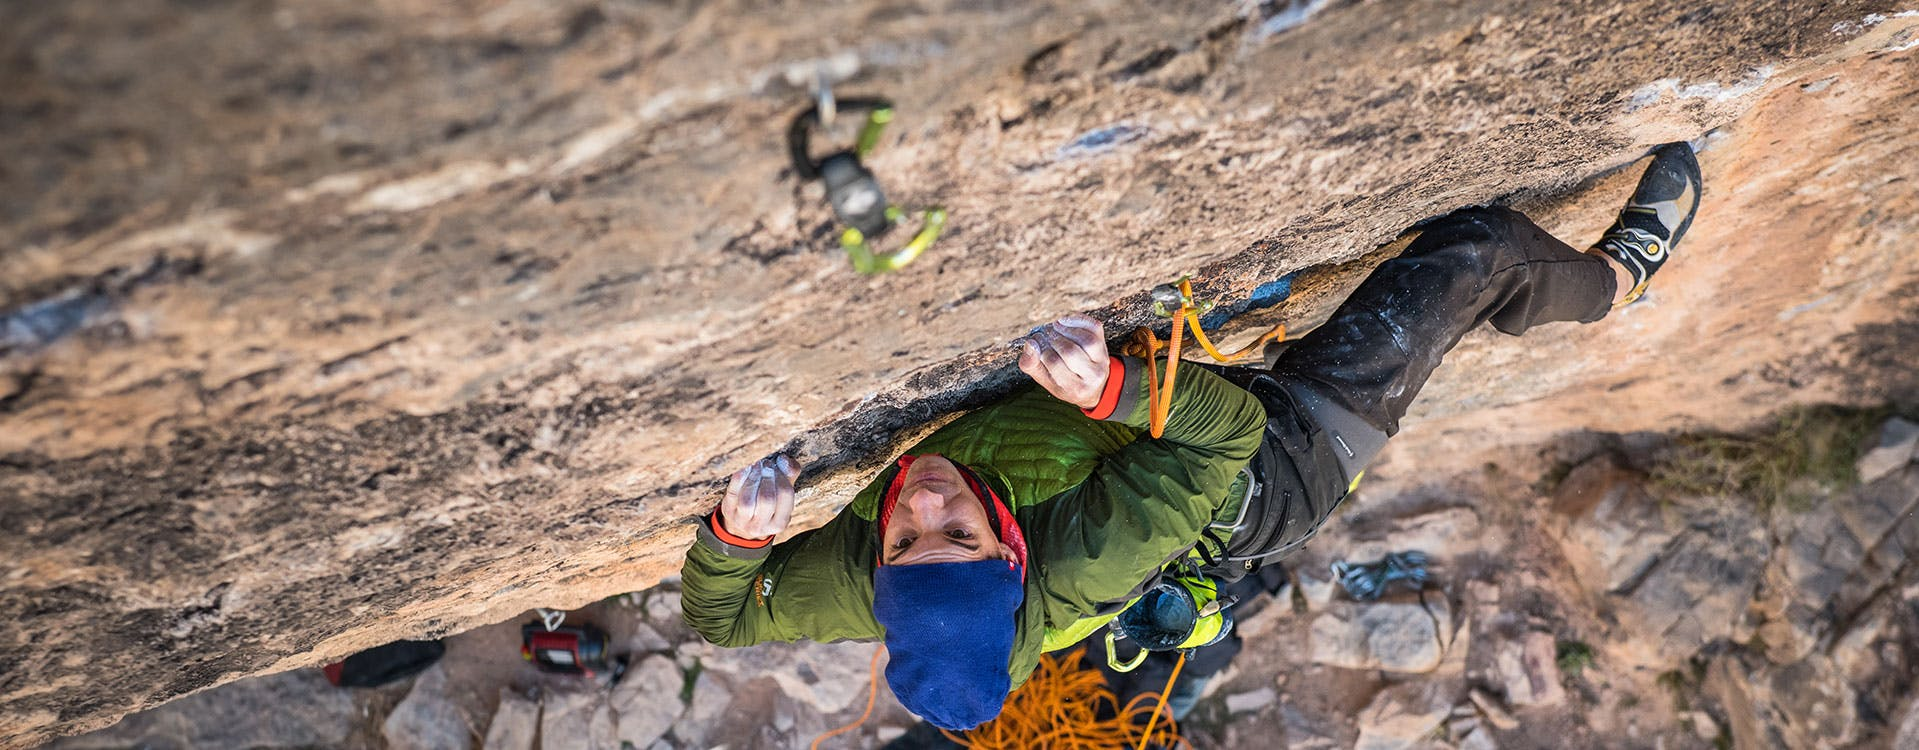 climber reaching for a hold on a route